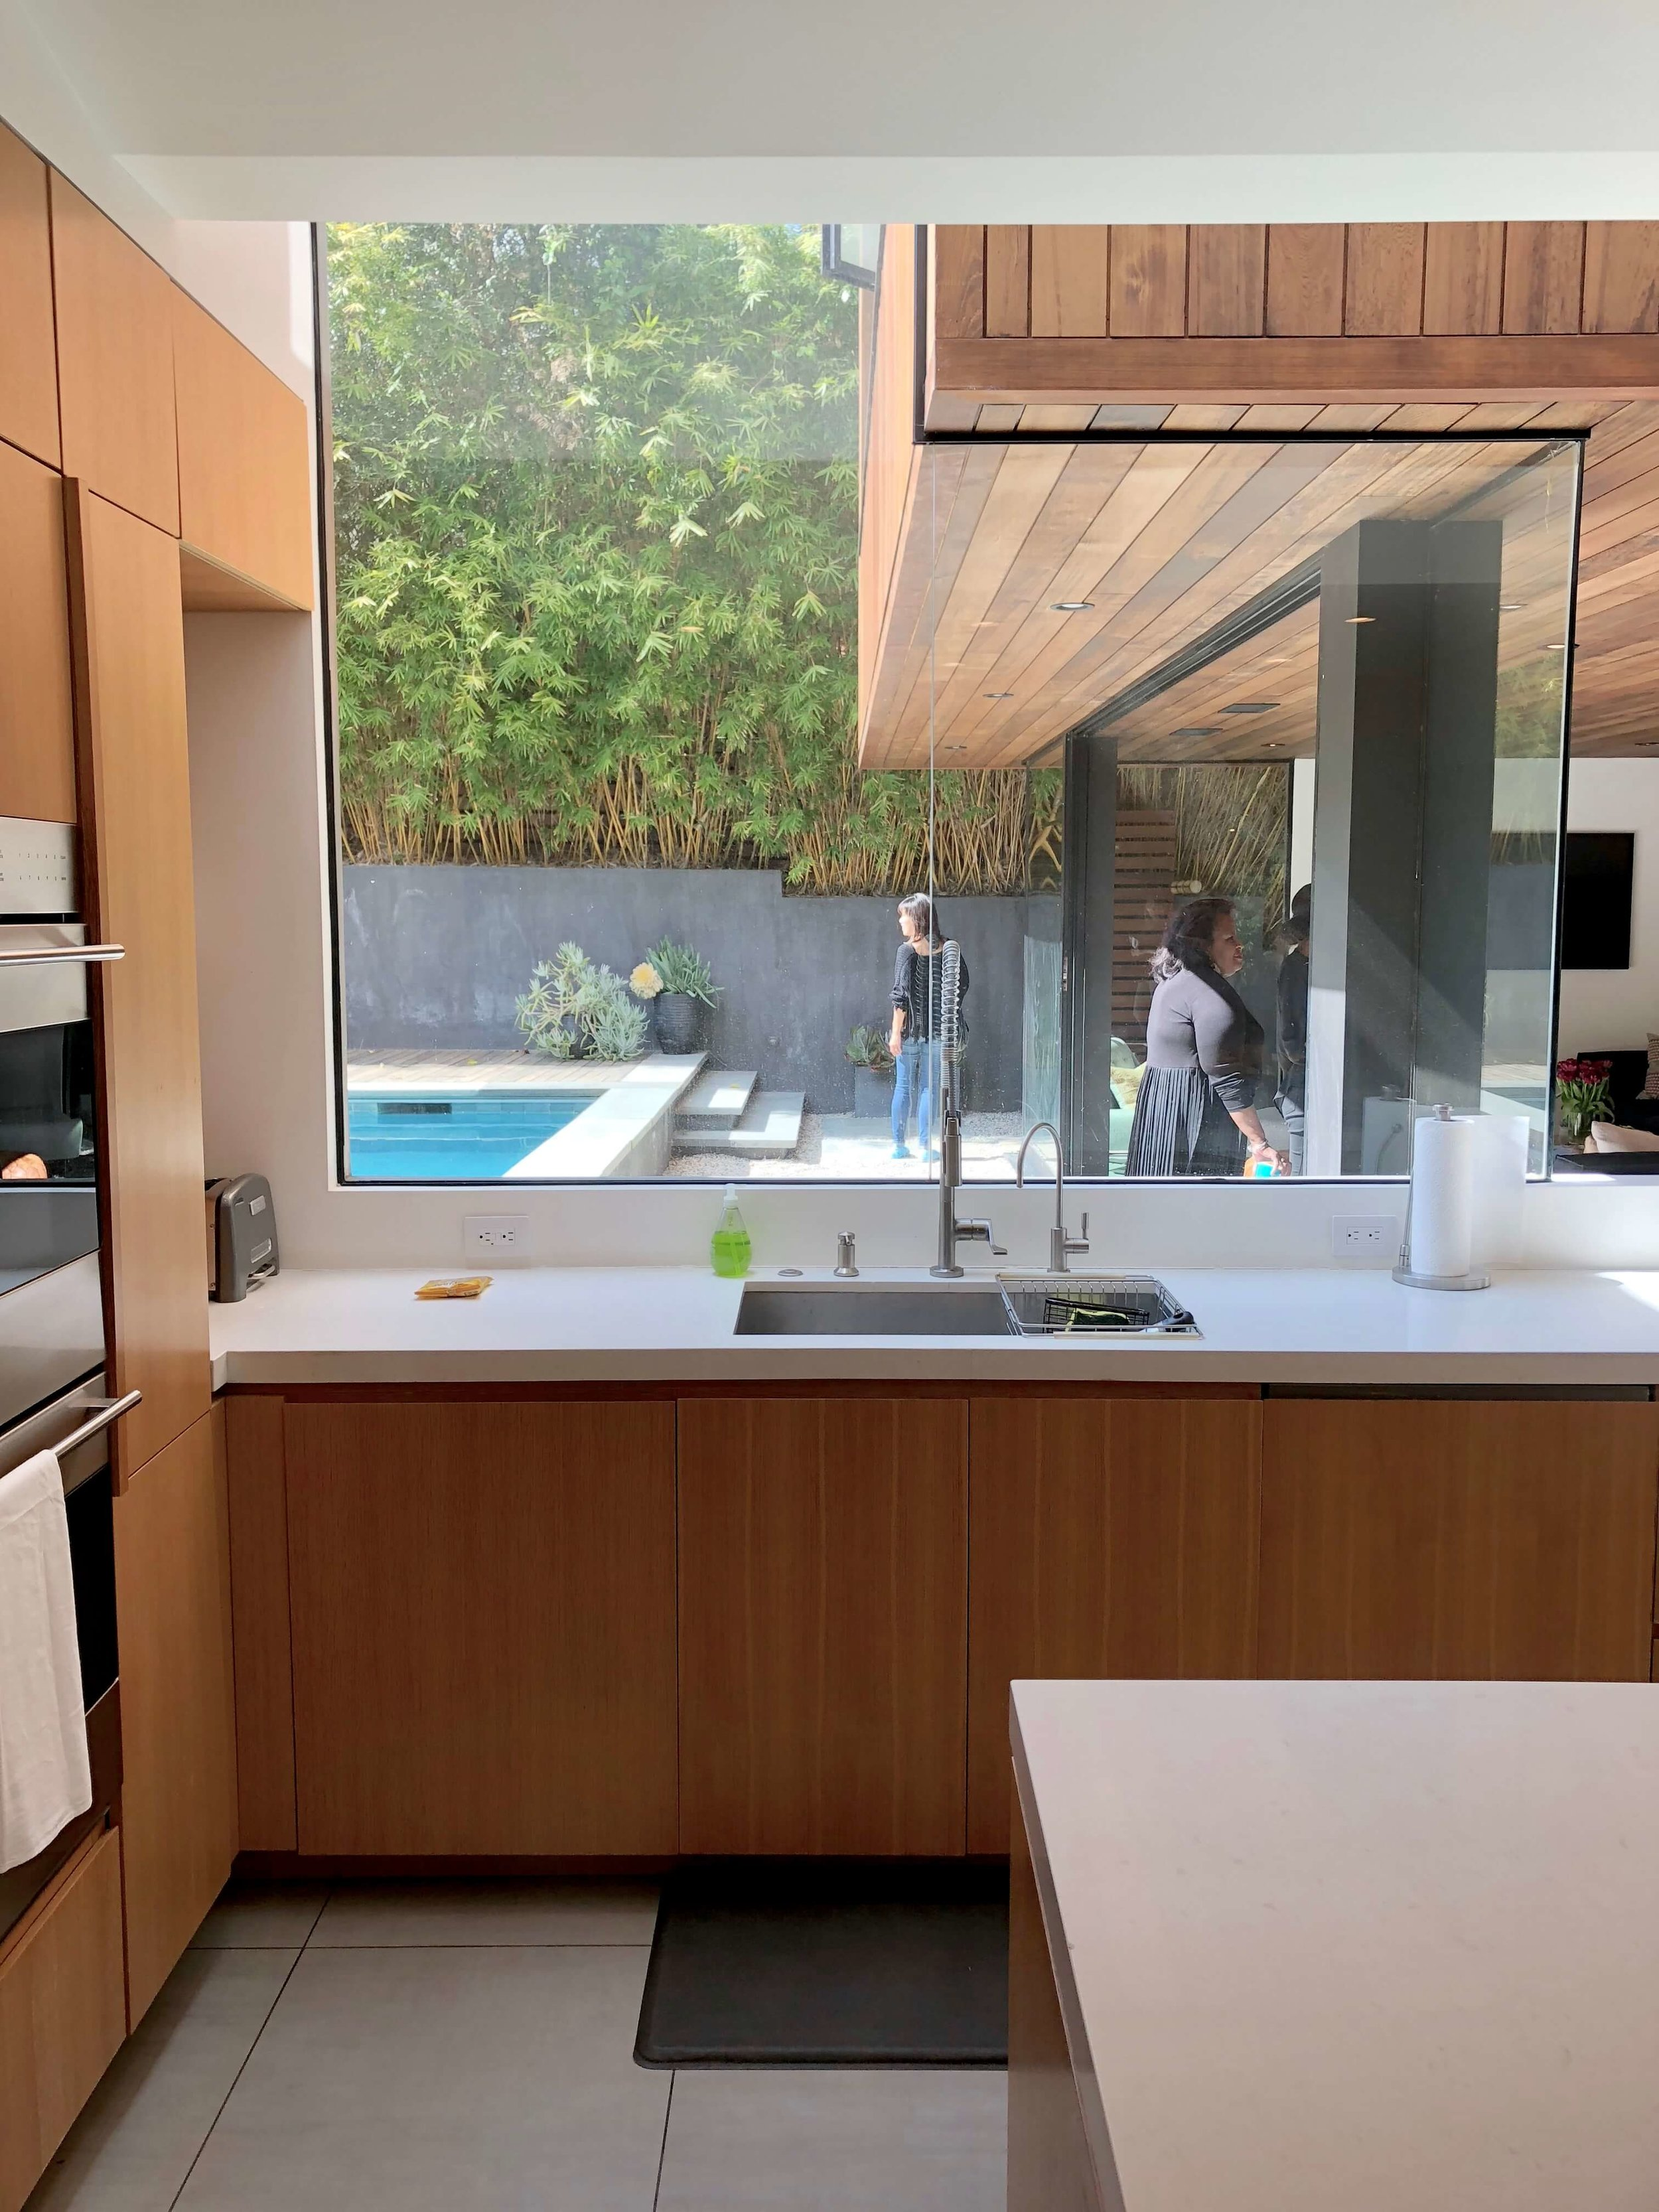 Rift cut oak cabinetry with butt joint glass windows in kitchen design | Assembledge+ Architects, Dwell on Design, Los Angeles, California #kitchen #riftcutoak #windows